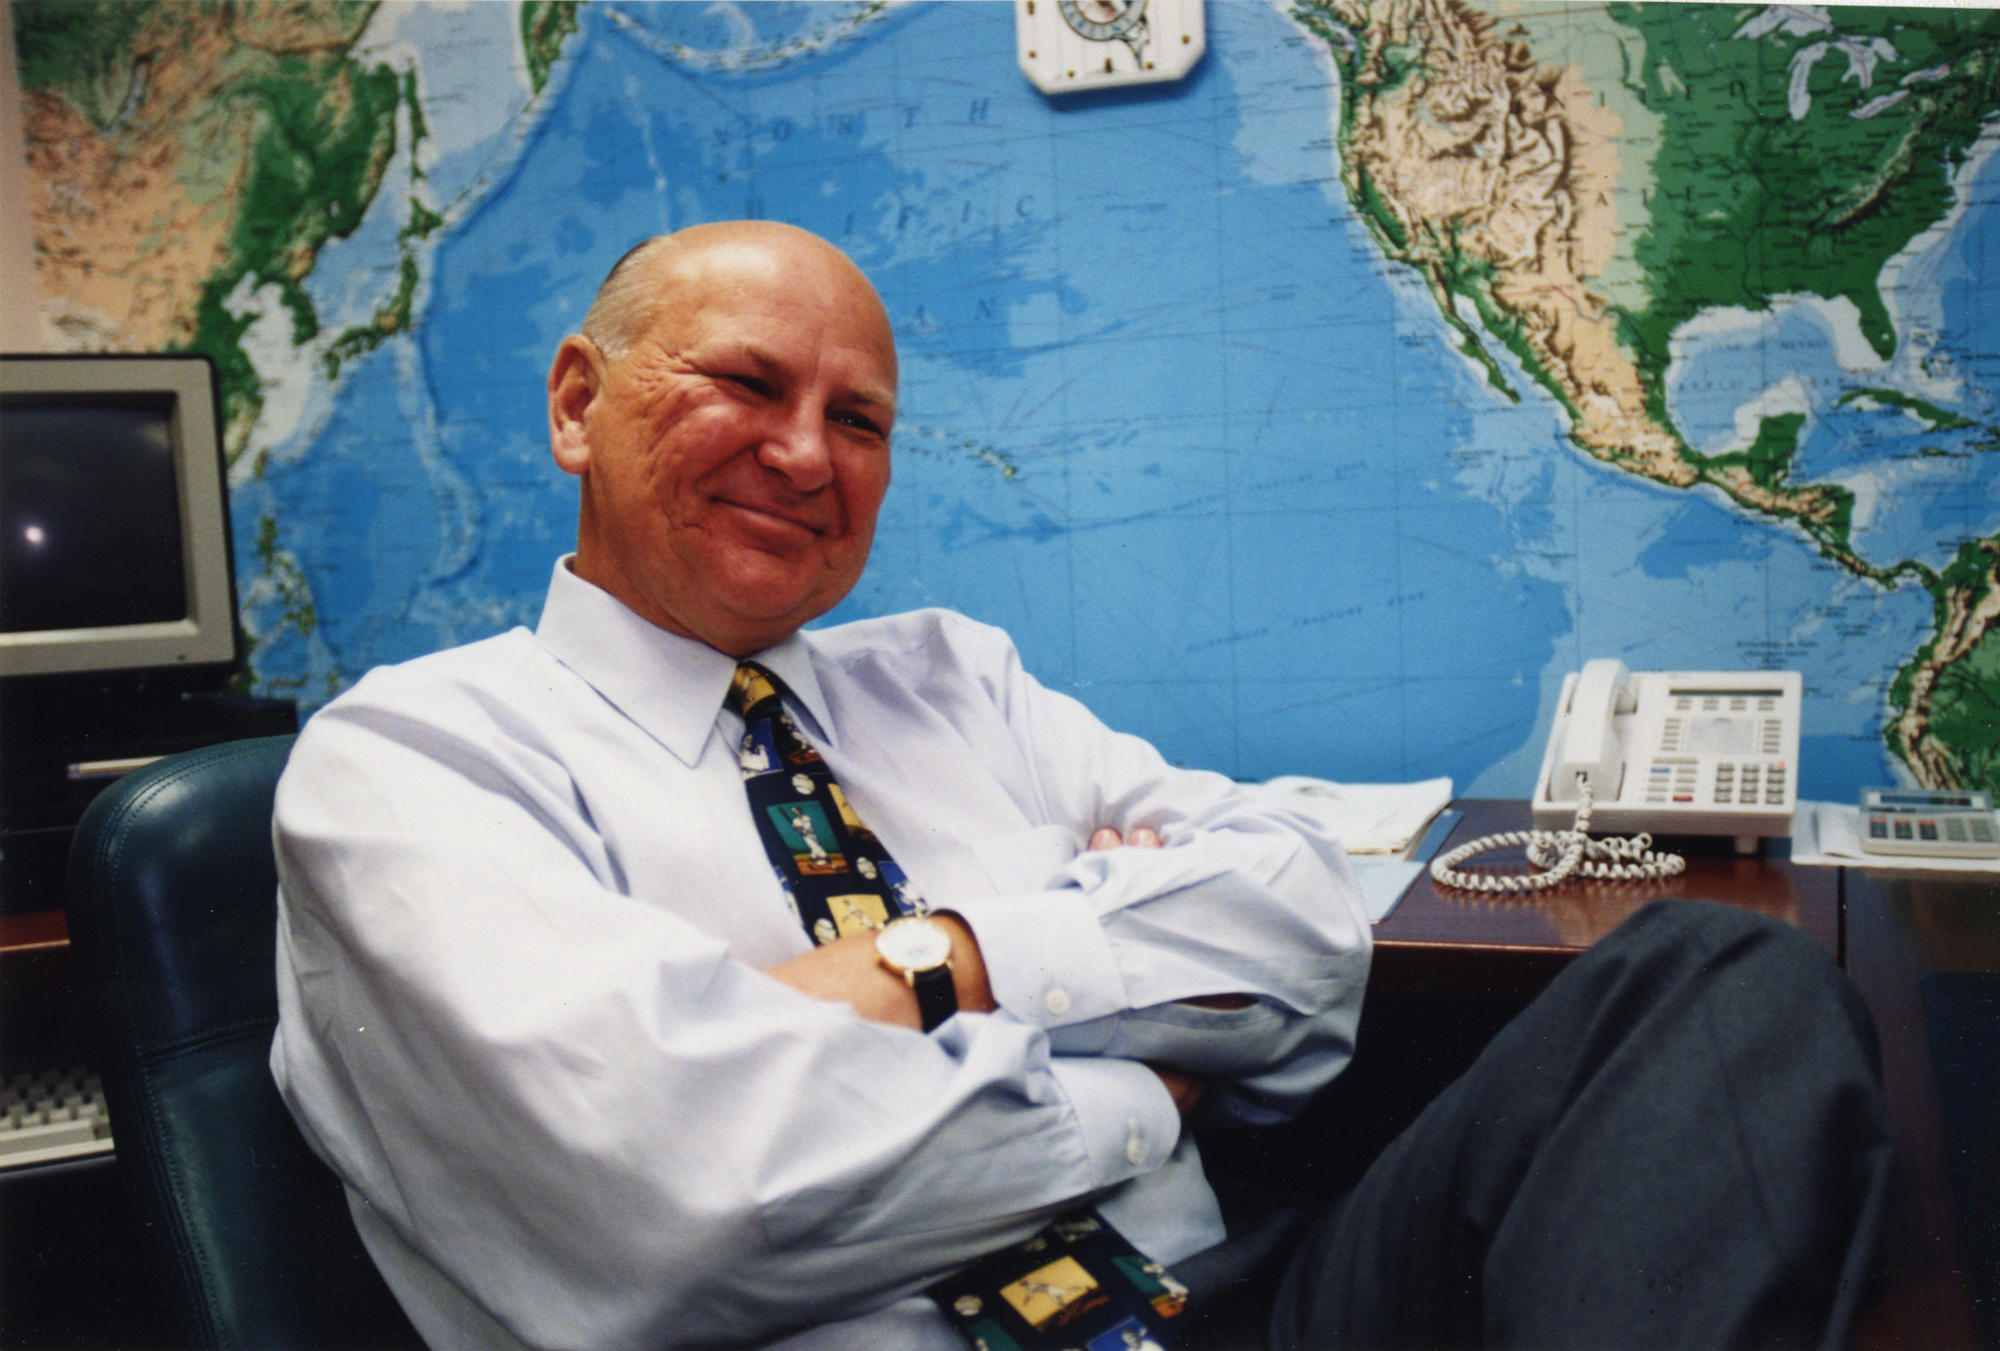 H. Wayne Huizenga, South Florida business titan, dead at 80